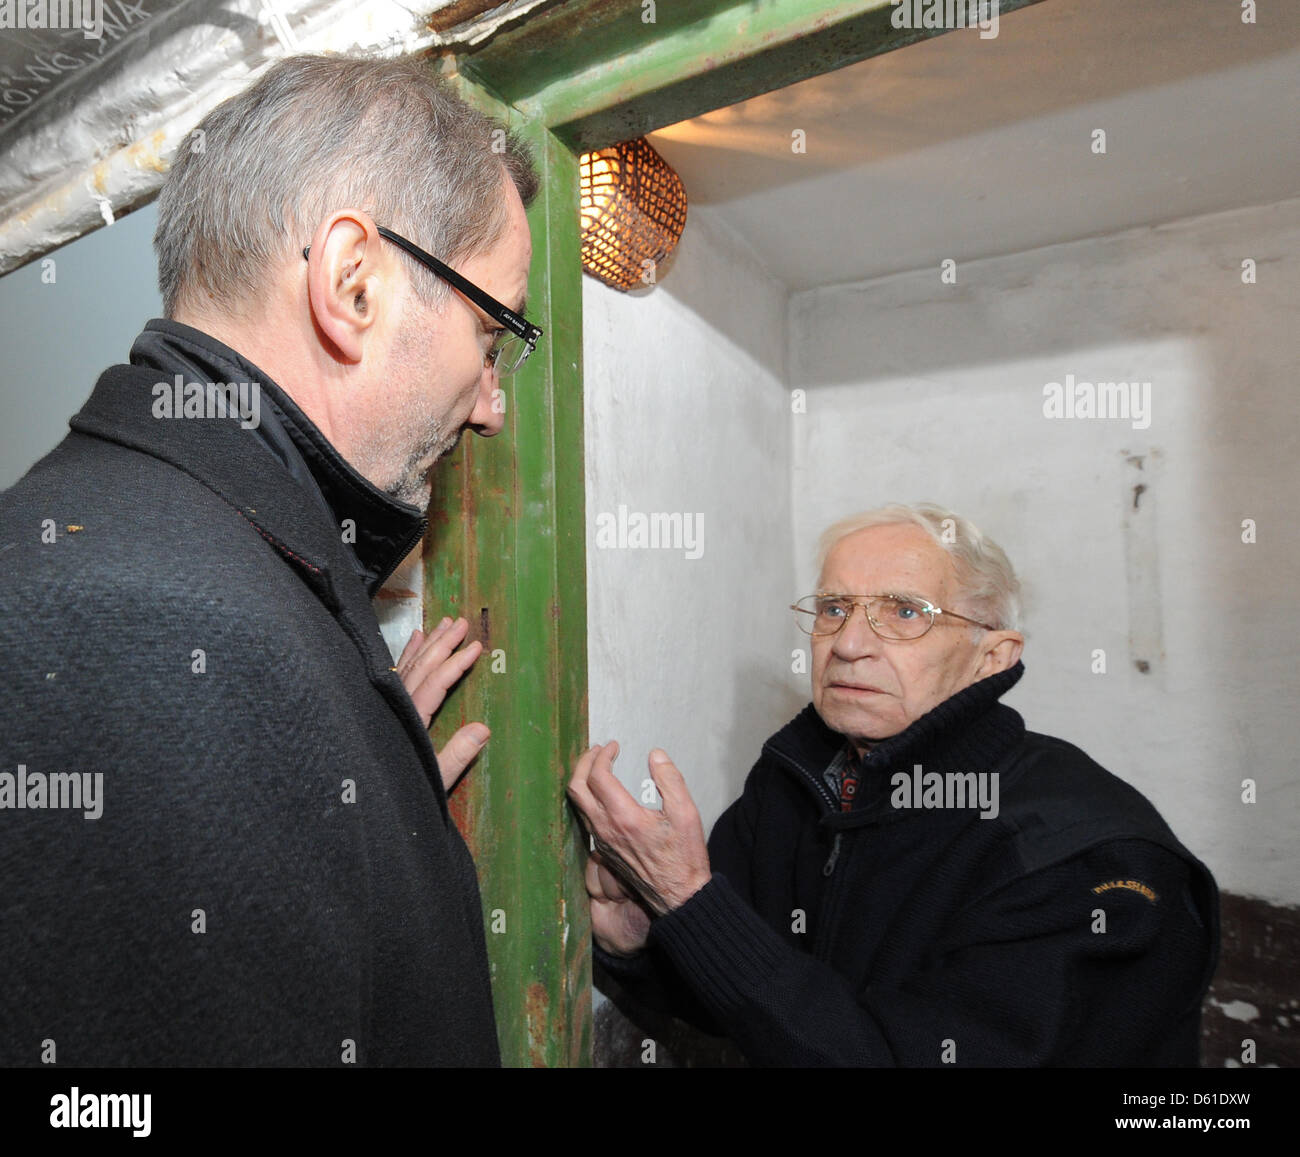 Premier of Brandenburg Matthias Platzeck (L) stands with former prisoner Peter Seele in his cell in the basement - Stock Image